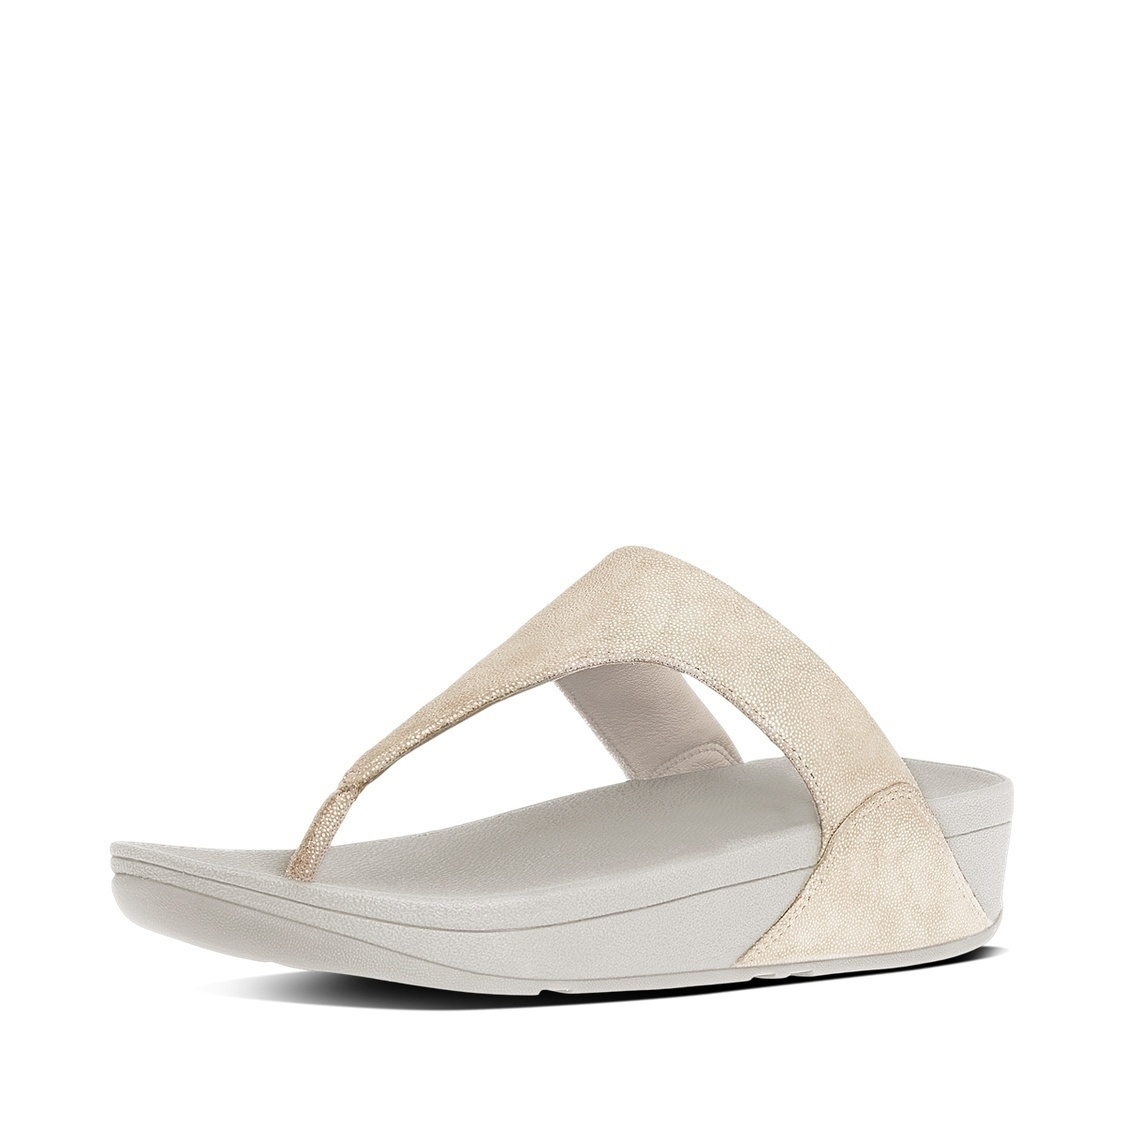 Shimmy Suede Toe-Thong Sandals